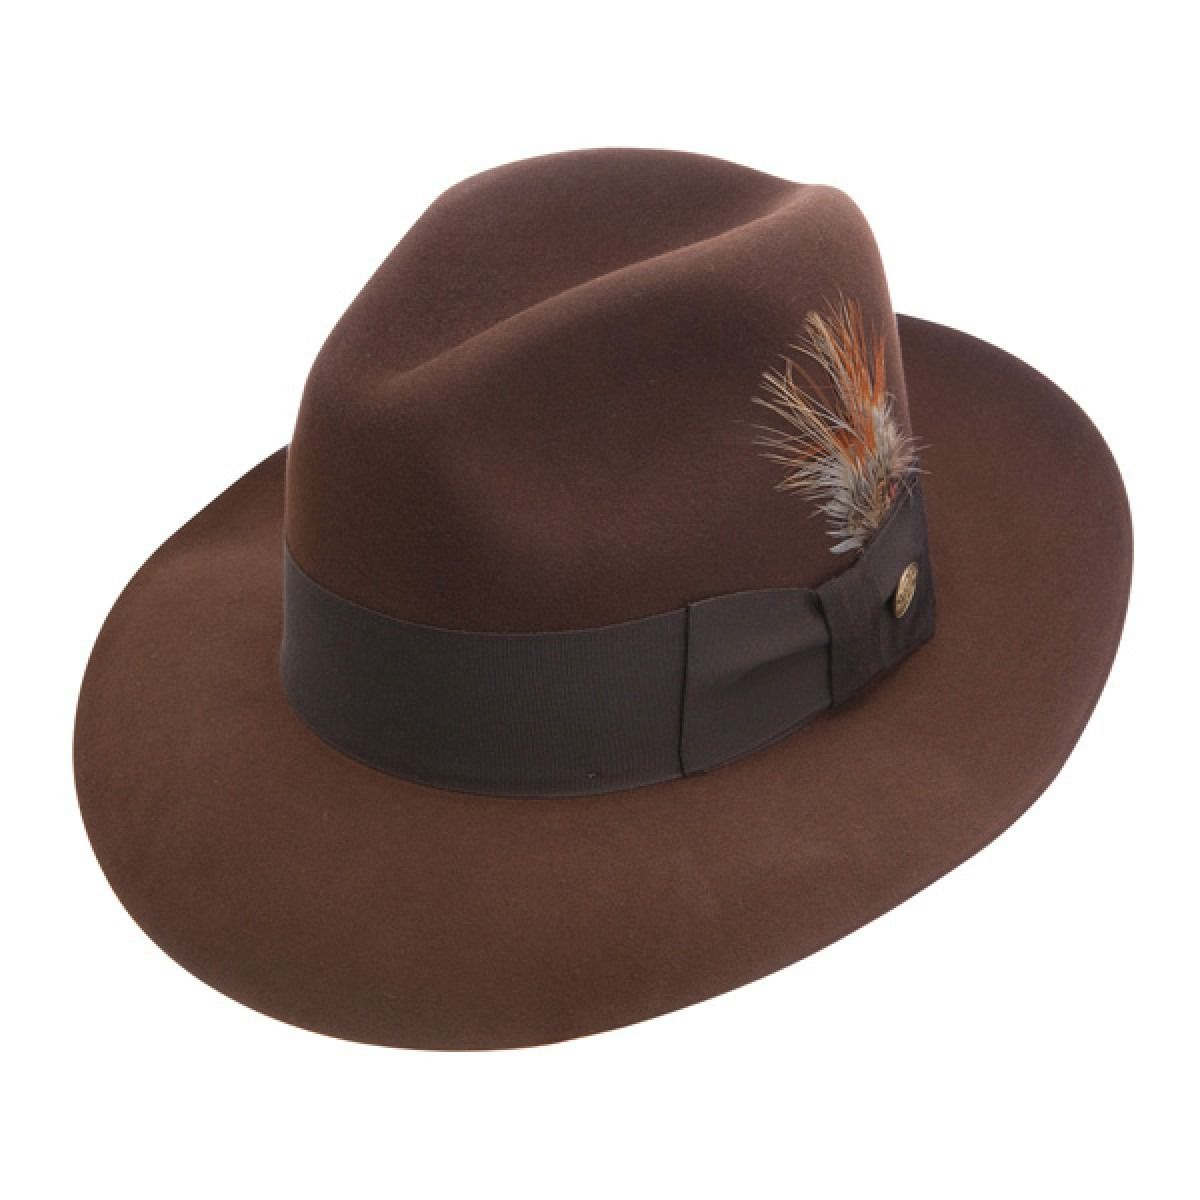 99383e00f Stetson Pinnacle - Fur Fedora Hat in 2019 | Clothing - Hats | Hats ...